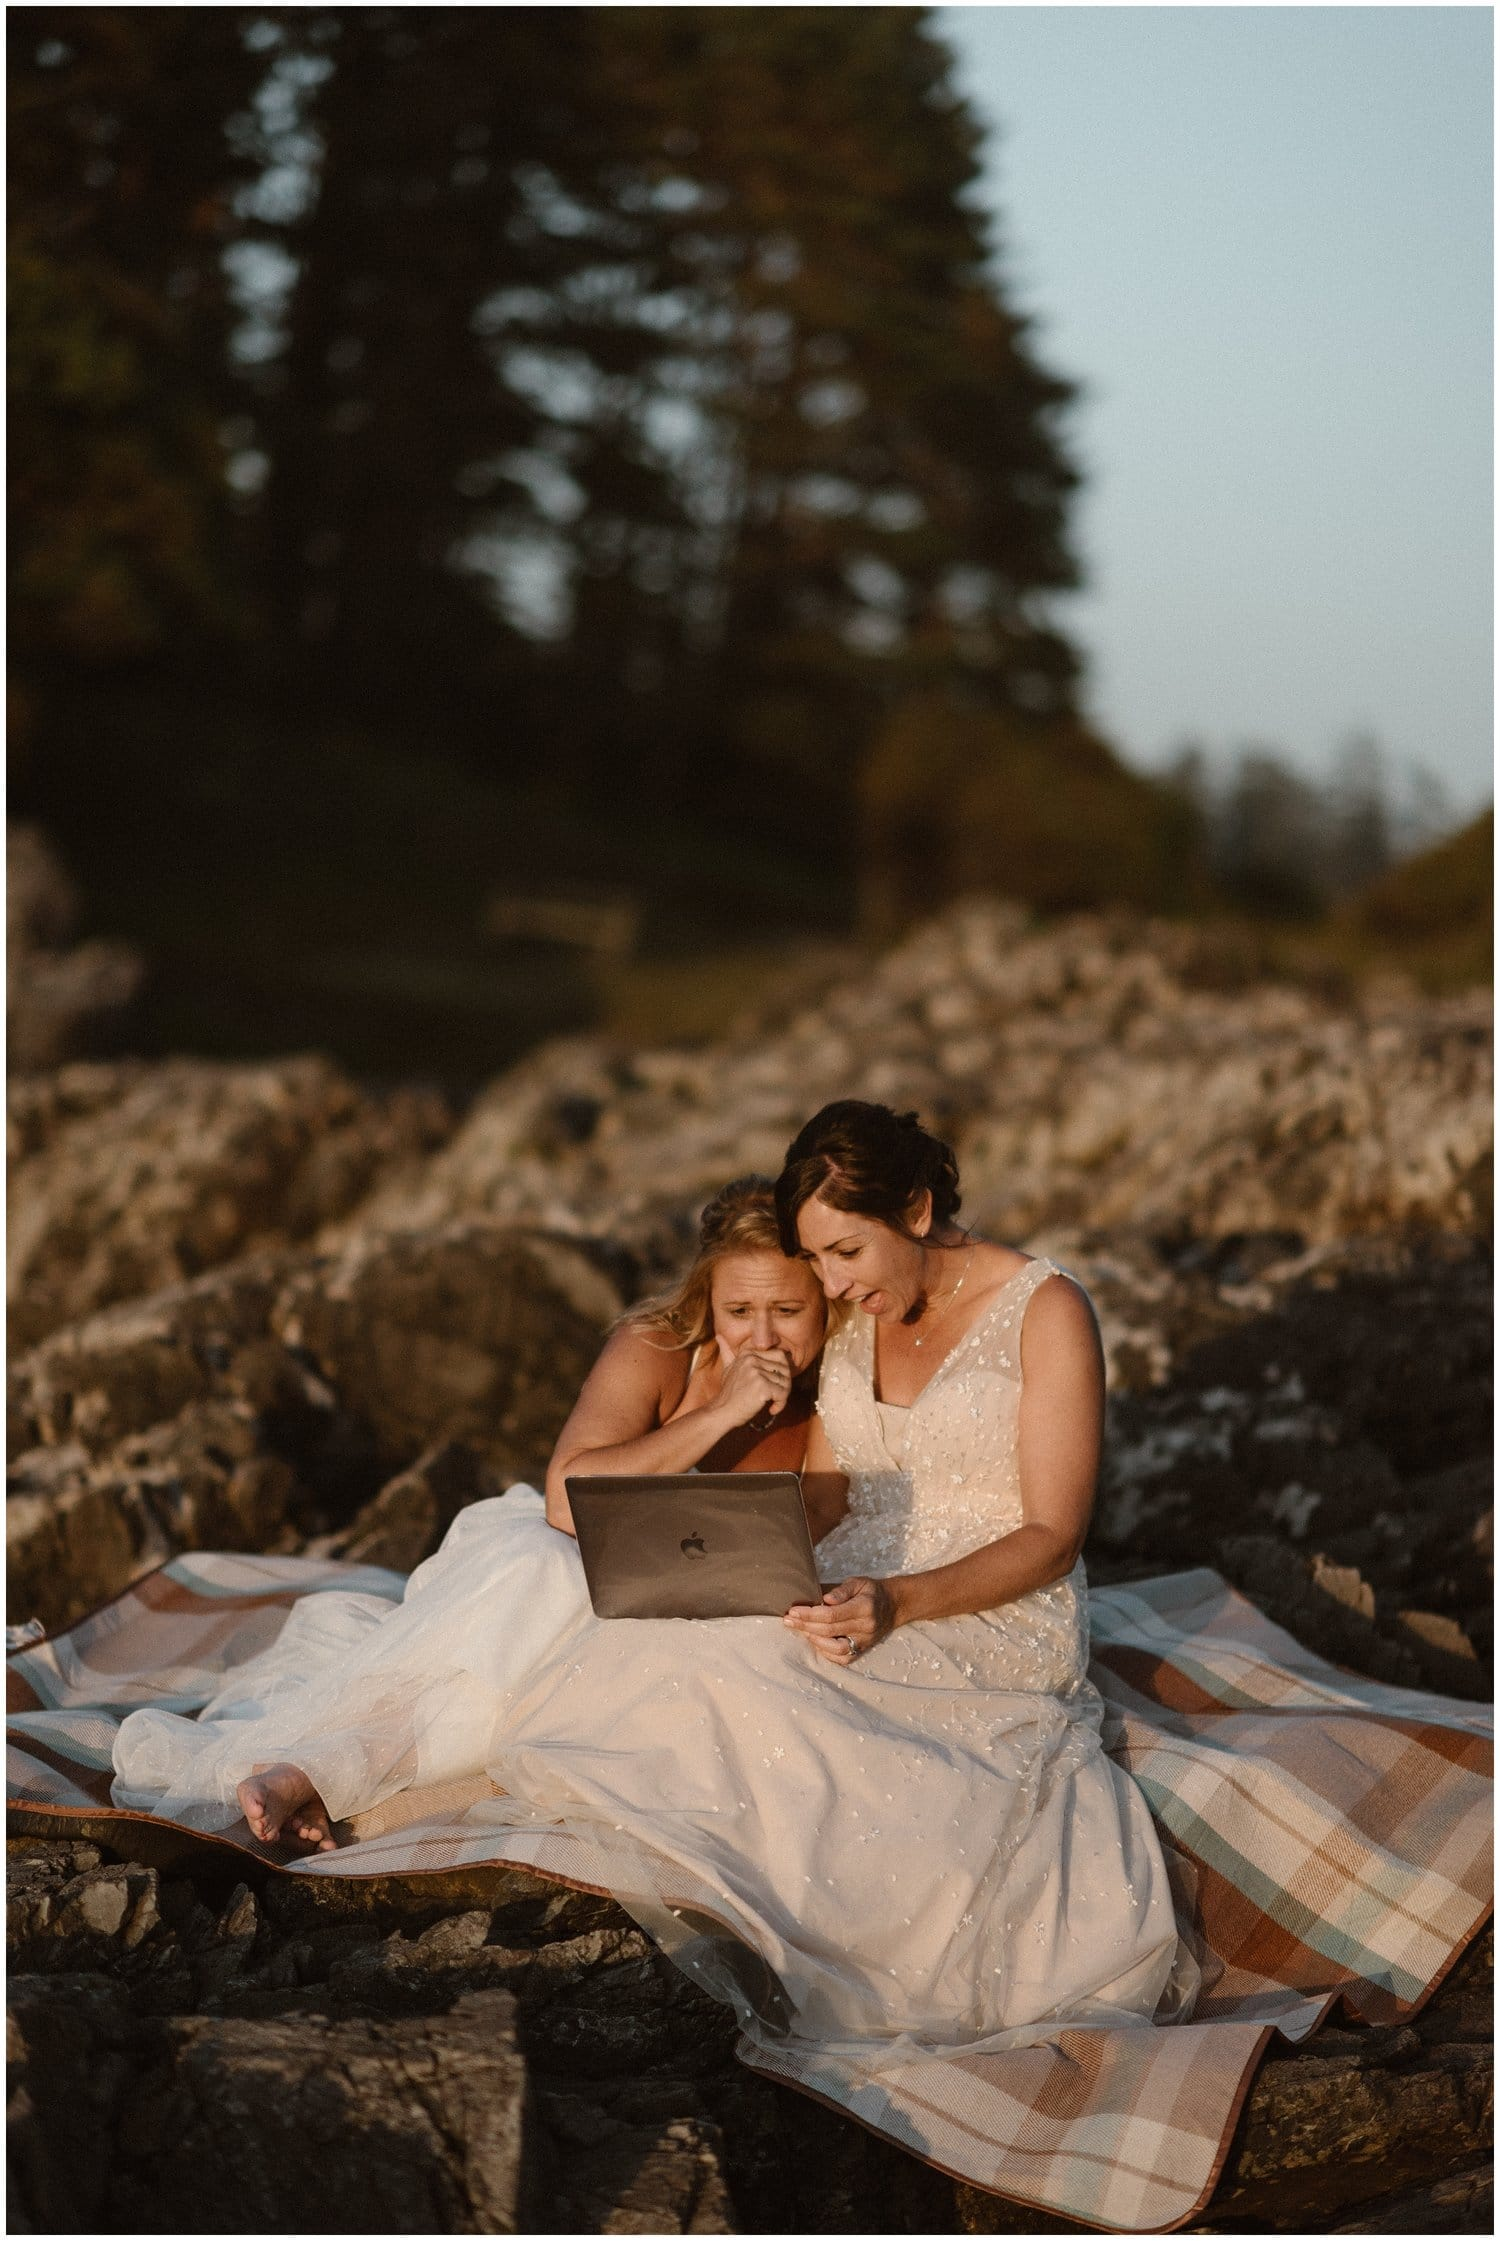 Two brides smile while looking at a computer on a picnic blanket.